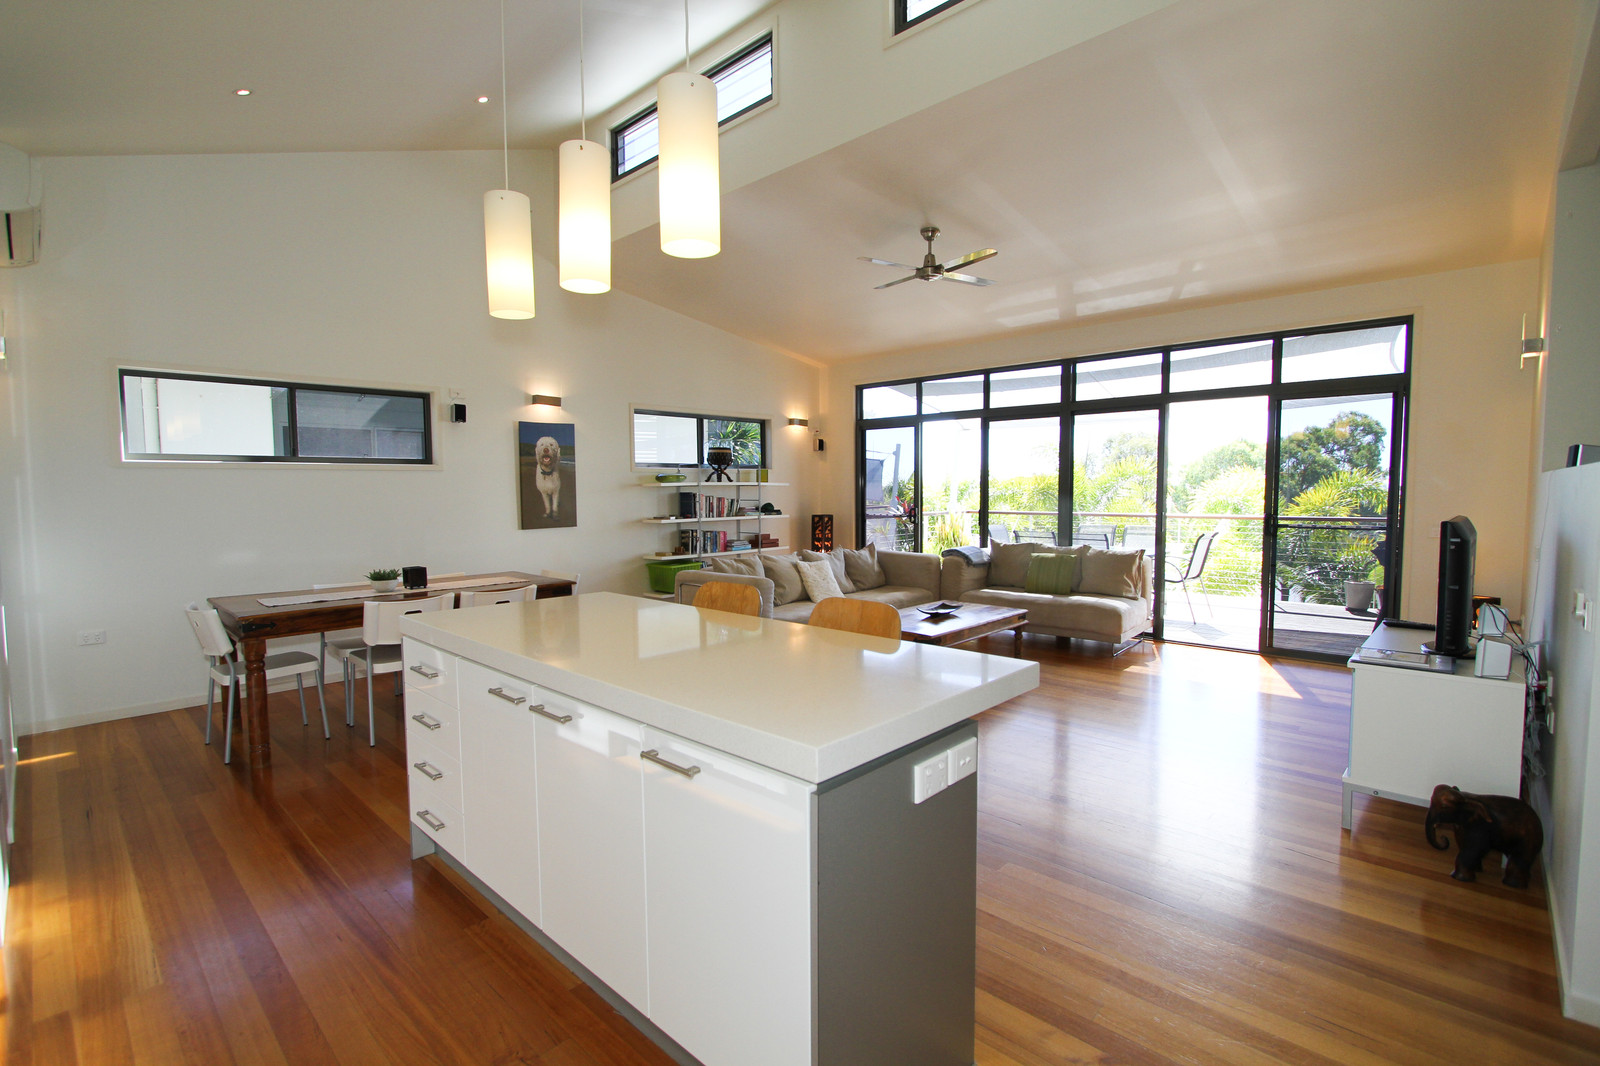 Townhouse 3 - open plan living, kitchen, dining and deck ...